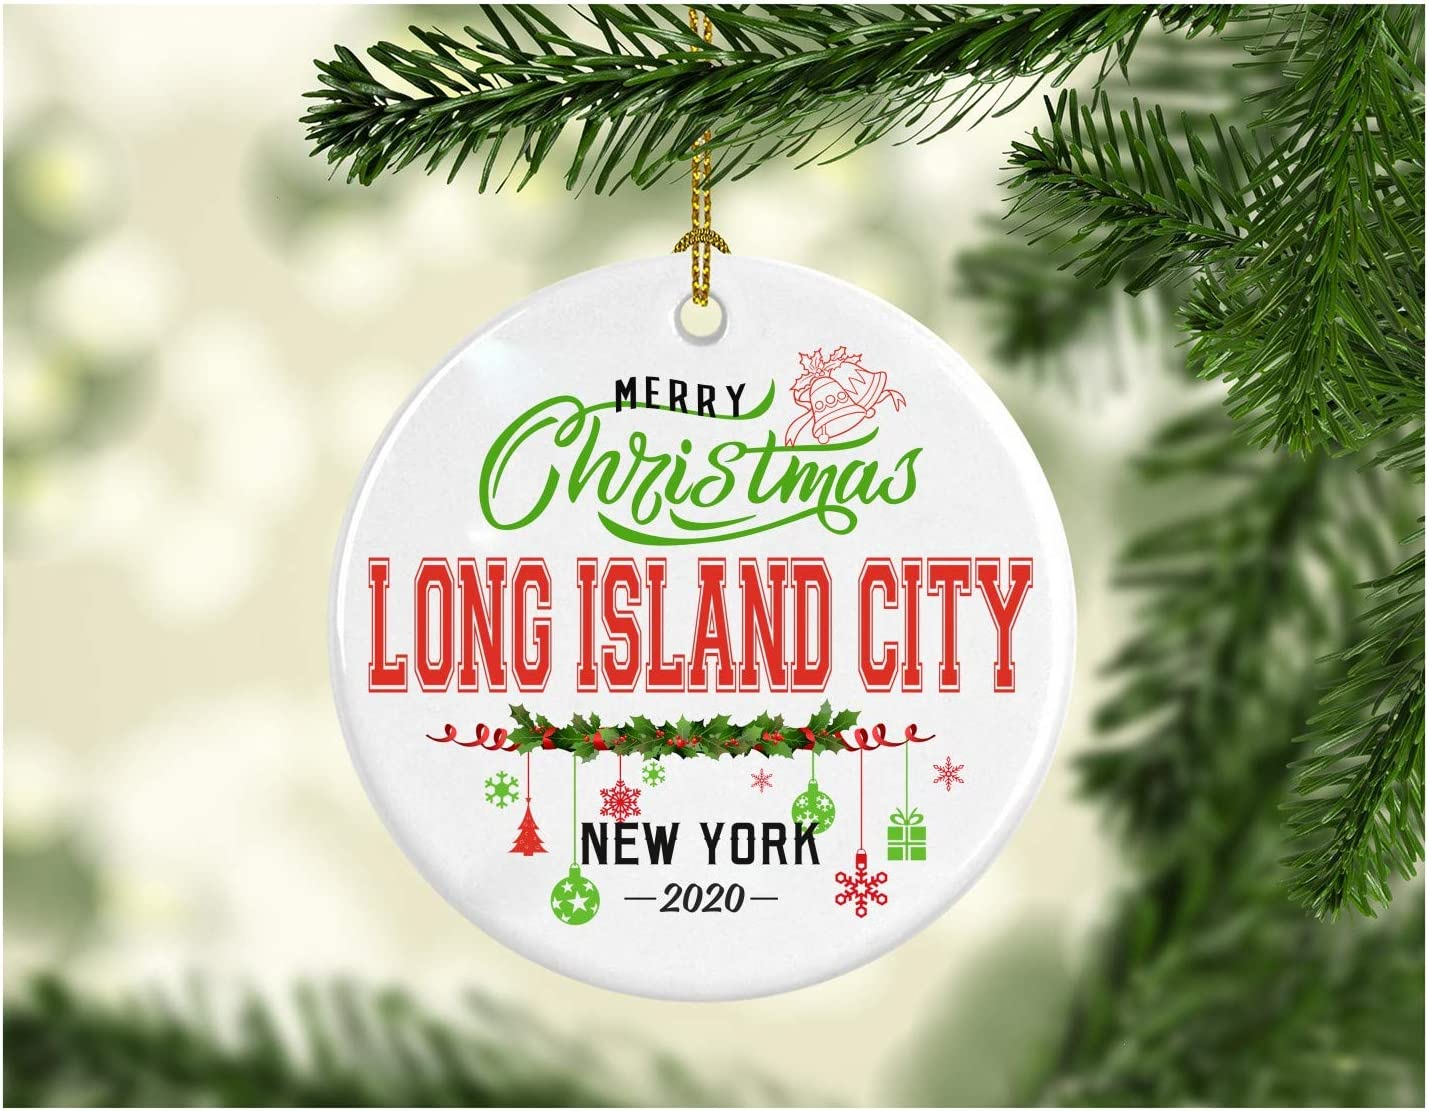 Christmas Decorations Tree Ornament - Gifts Hometown State - Merry Christmas Long Island City New York 2020 - Gift for Family Rustic 1St Xmas Tree in Our New Home 3 Inches White